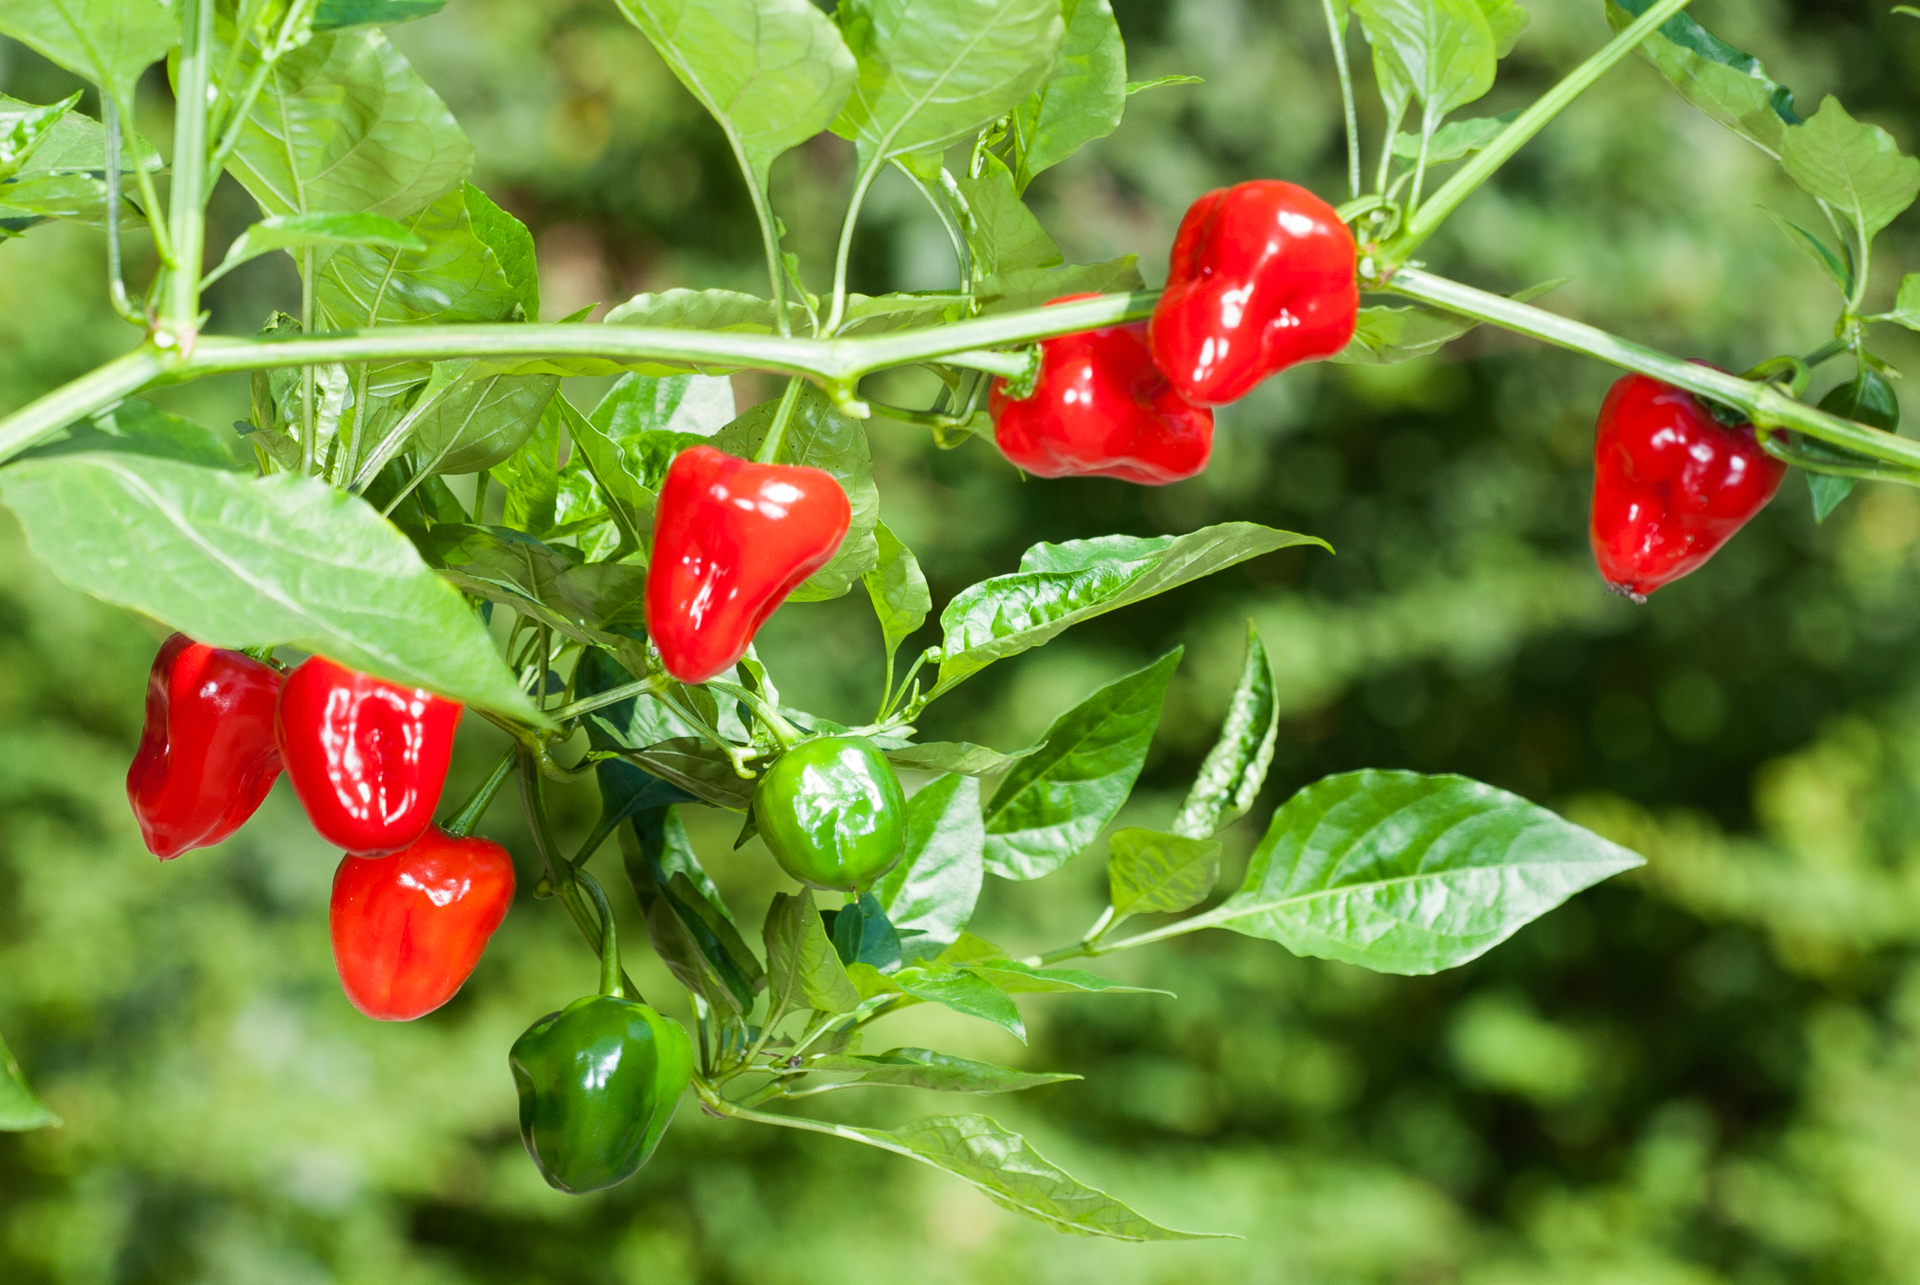 Pimenta - Capsicum sp. - Chilisorte